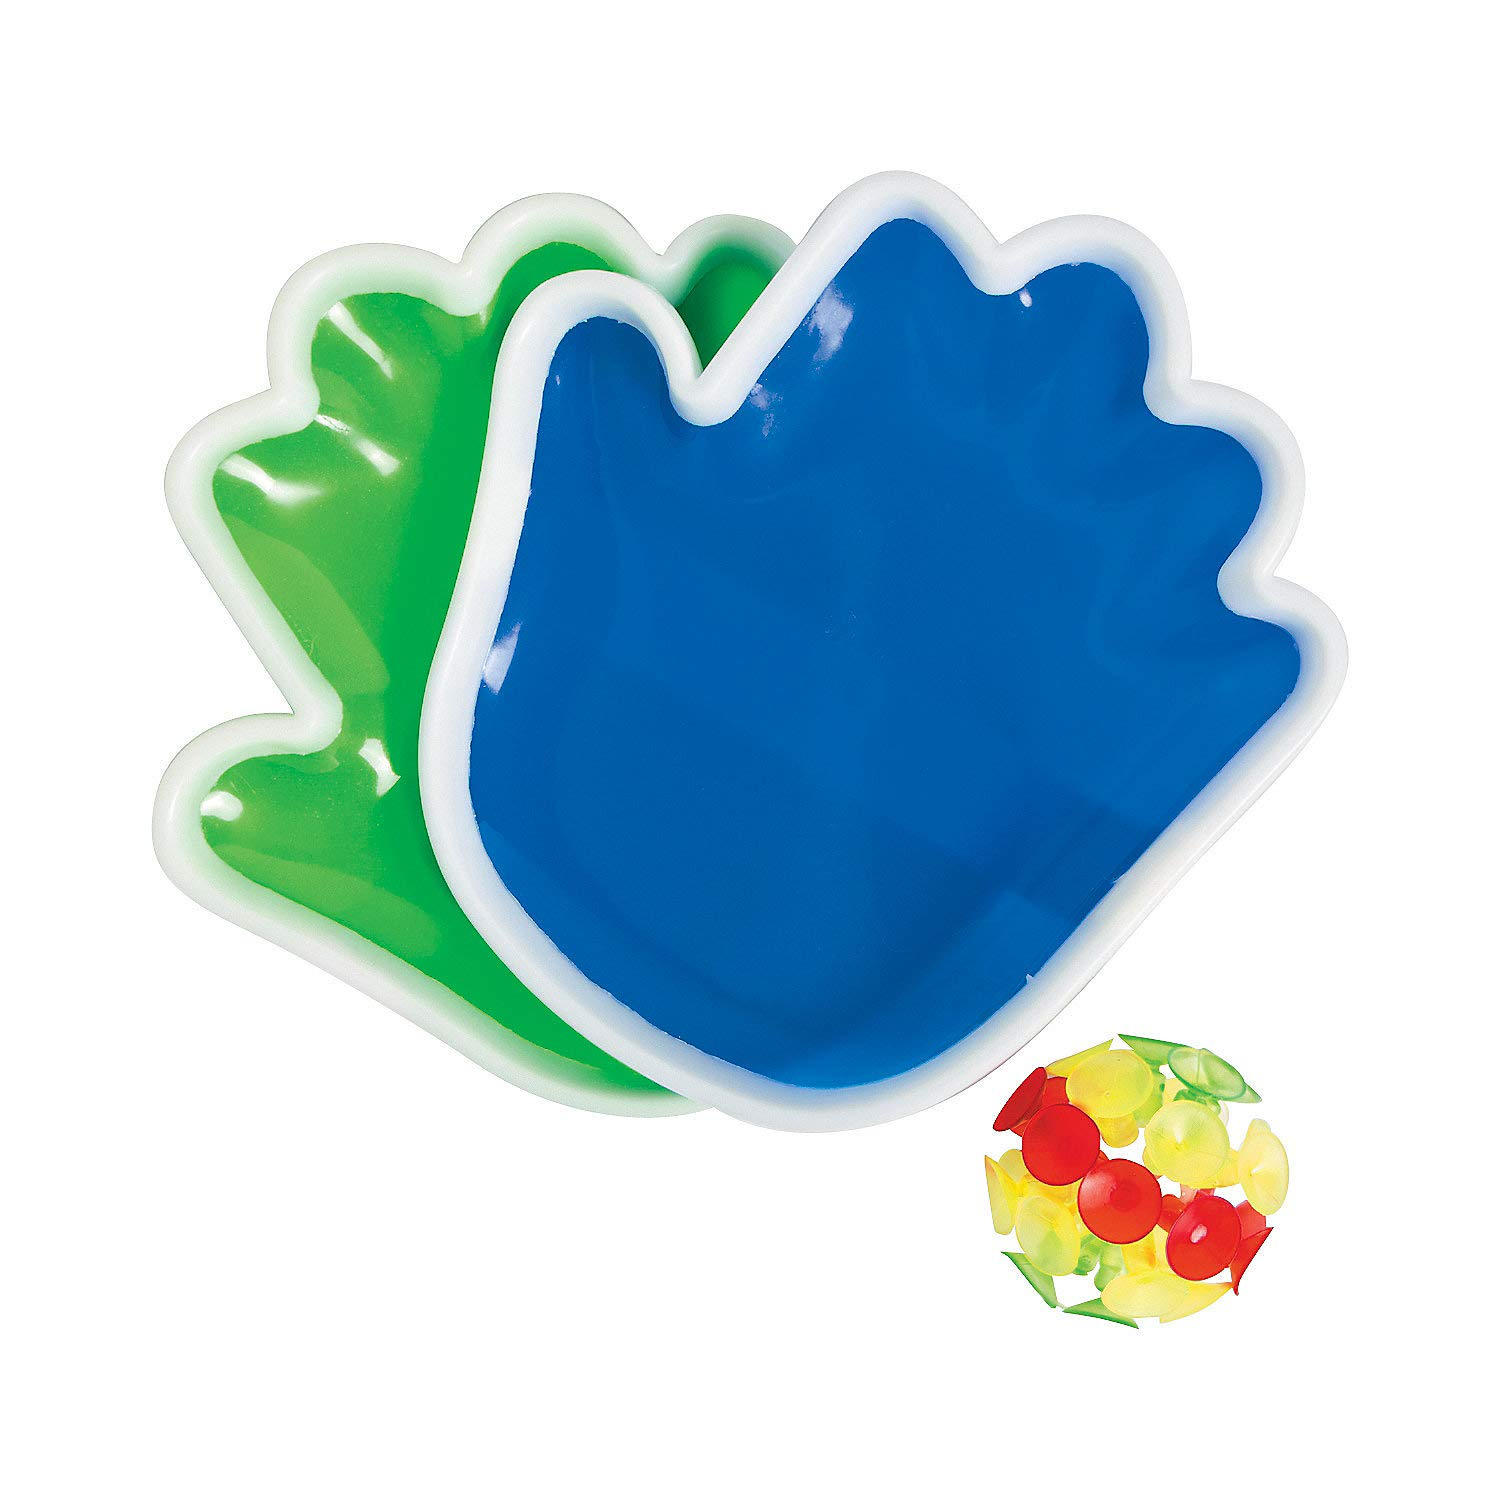 Fun Express - Plastic Hand Catch Game - Toys - Games - Outdoor & Travel Game Sets - 1 Piece